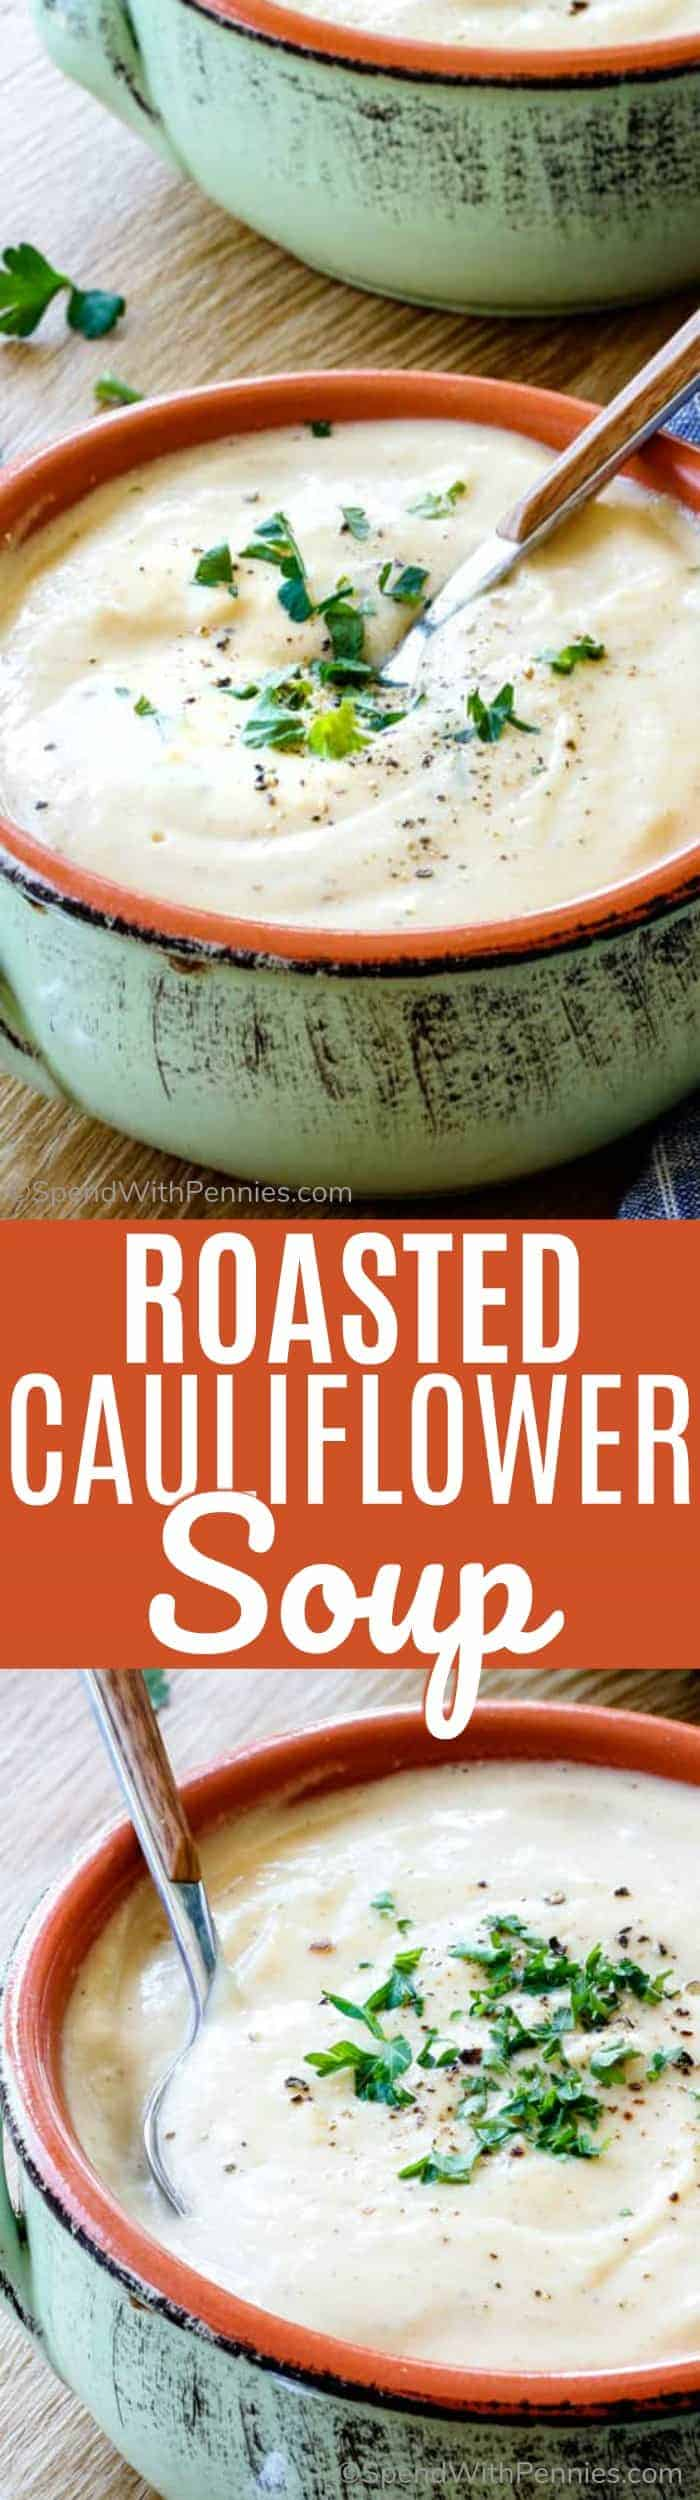 Creamy Roasted Cauliflower Soup is easy to make, infused with flavor and just happens to be healthy! This soup reheats beautifully so it makes the perfect lunch throughout the week or ideal make ahead dinner. #spendwithpennies #cauliflower #creamsoup #soup #roastedveggies #weeknightmeal #quickrecipe #easyrecipe #easysouprecipe